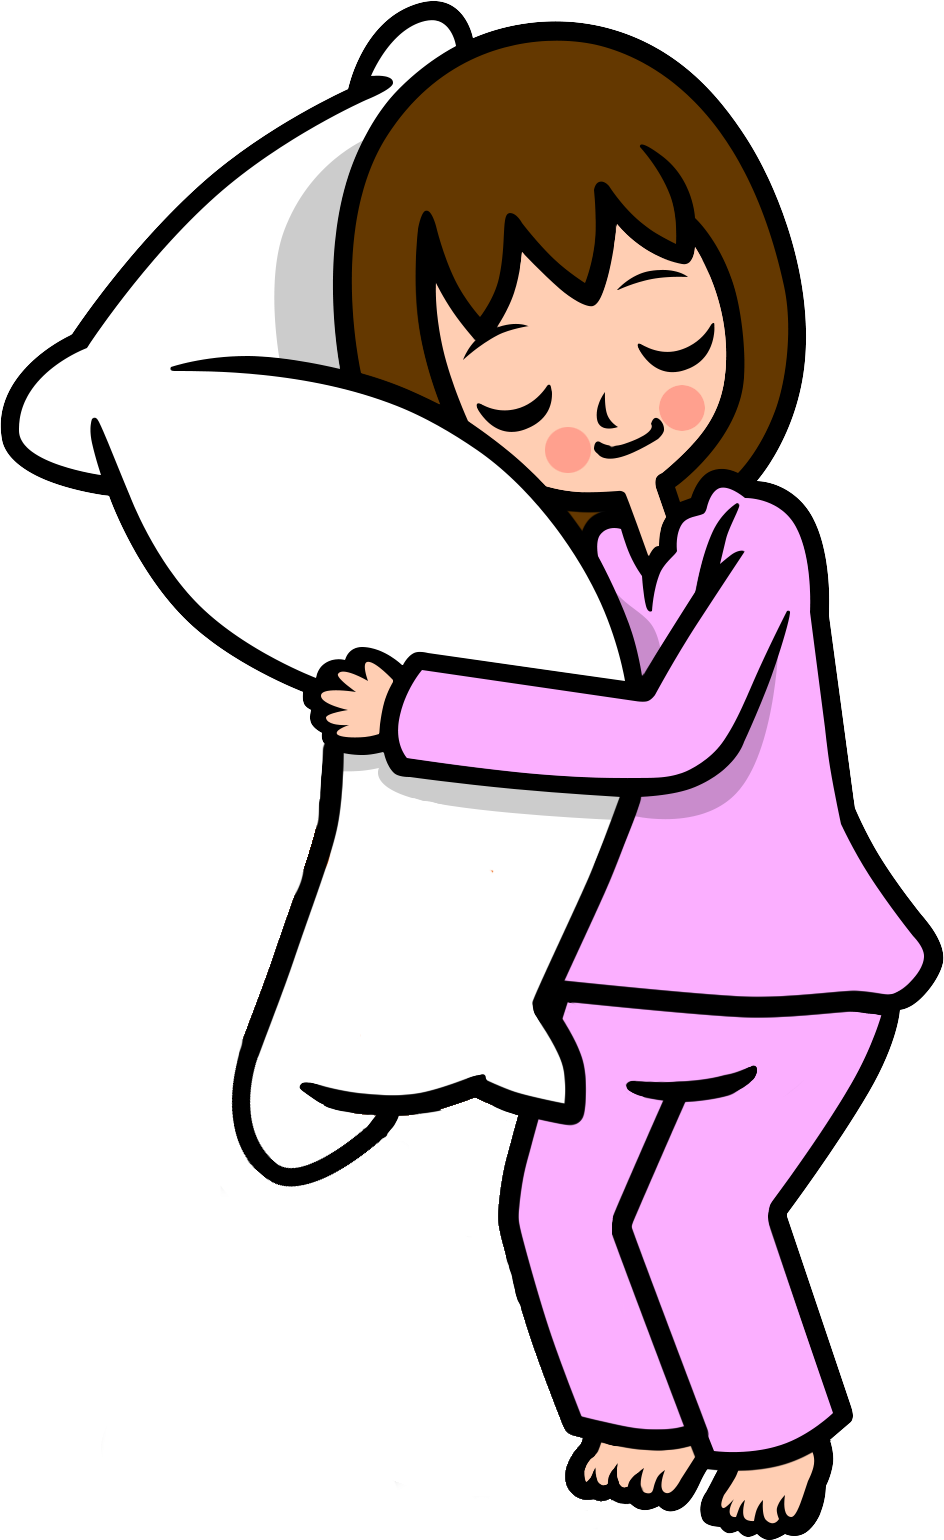 Pajama at getdrawings com. Pajamas clipart